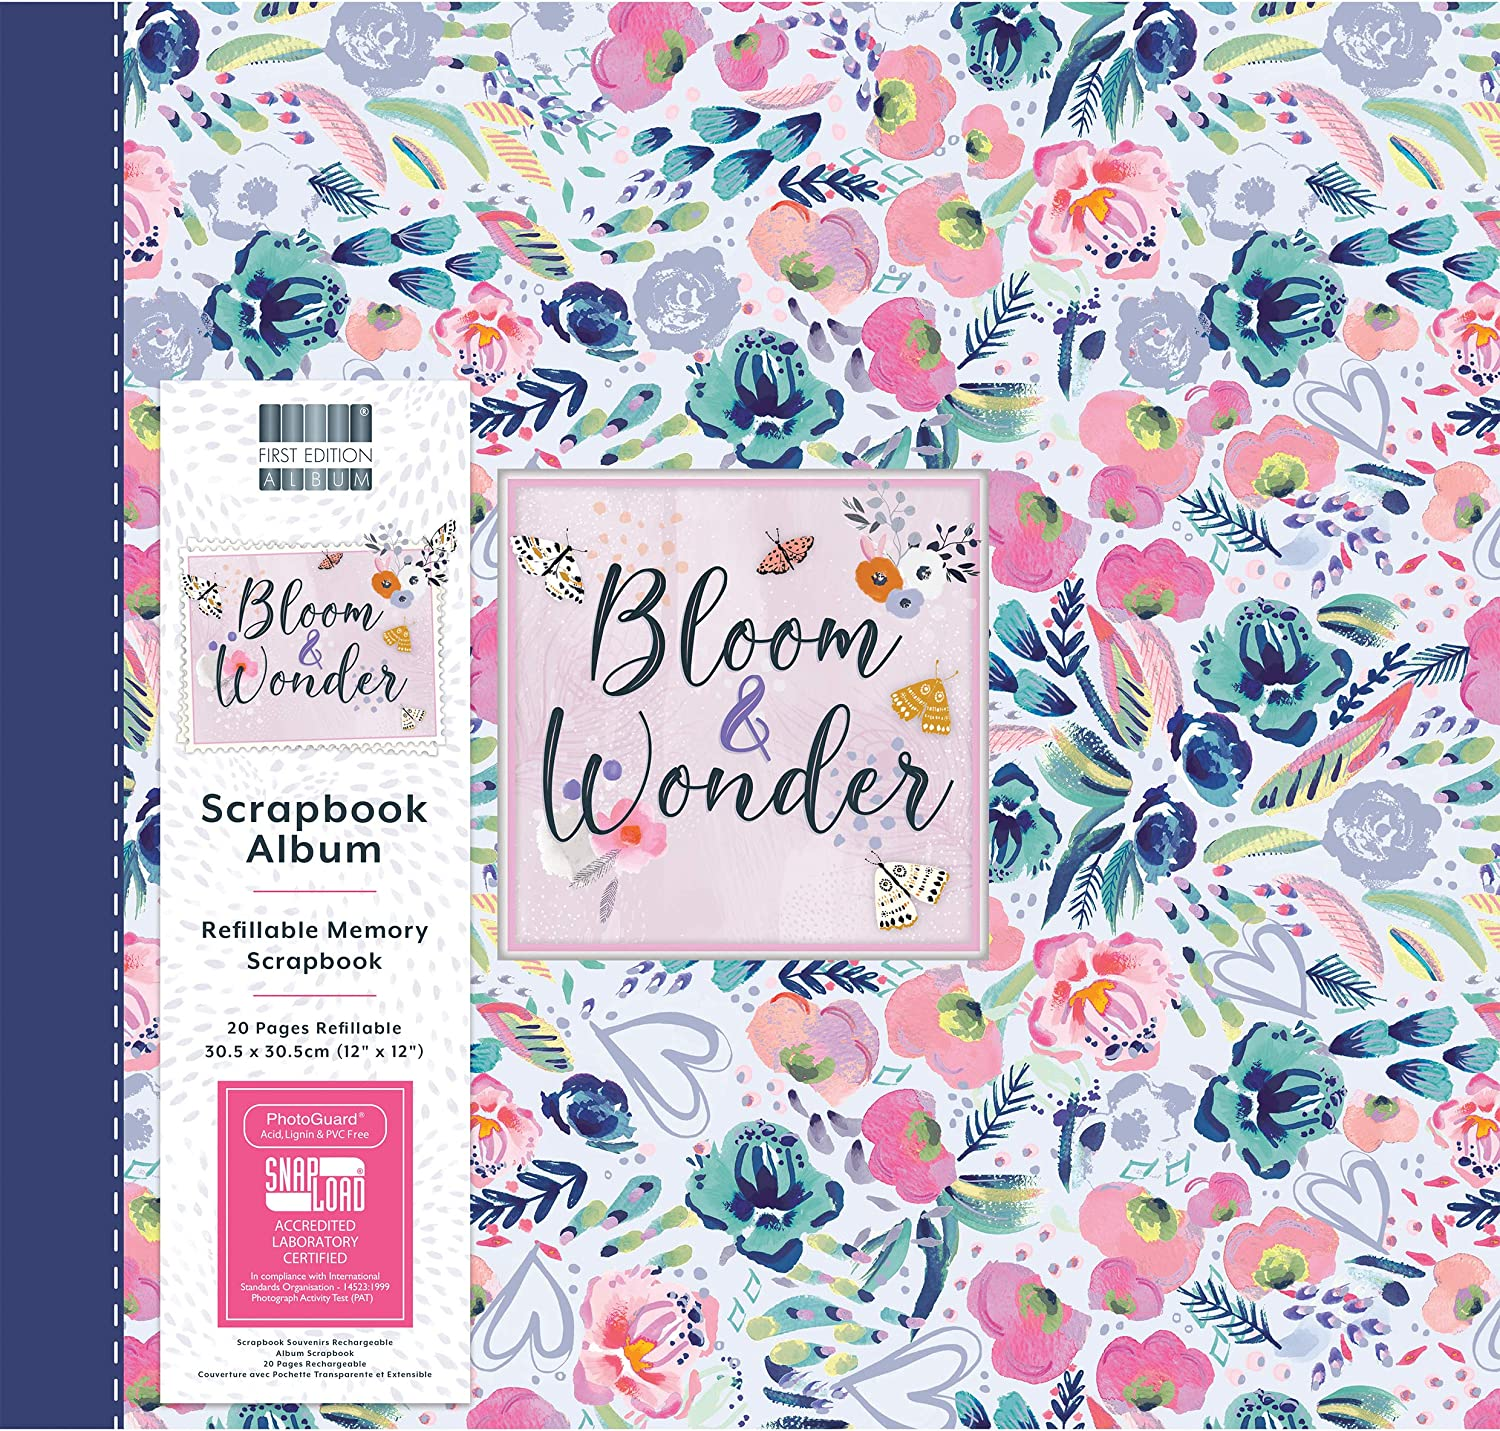 """Multicolour 12x12 10 Inserts Holds 20 Pages-Snap-Load Technology-Refillable-for Scrapbooking Journaling Photo Albums First Edition FEALB102 12/""""x12/""""/Scrapbook Bloom and Wonder/ Memory Keeping"""